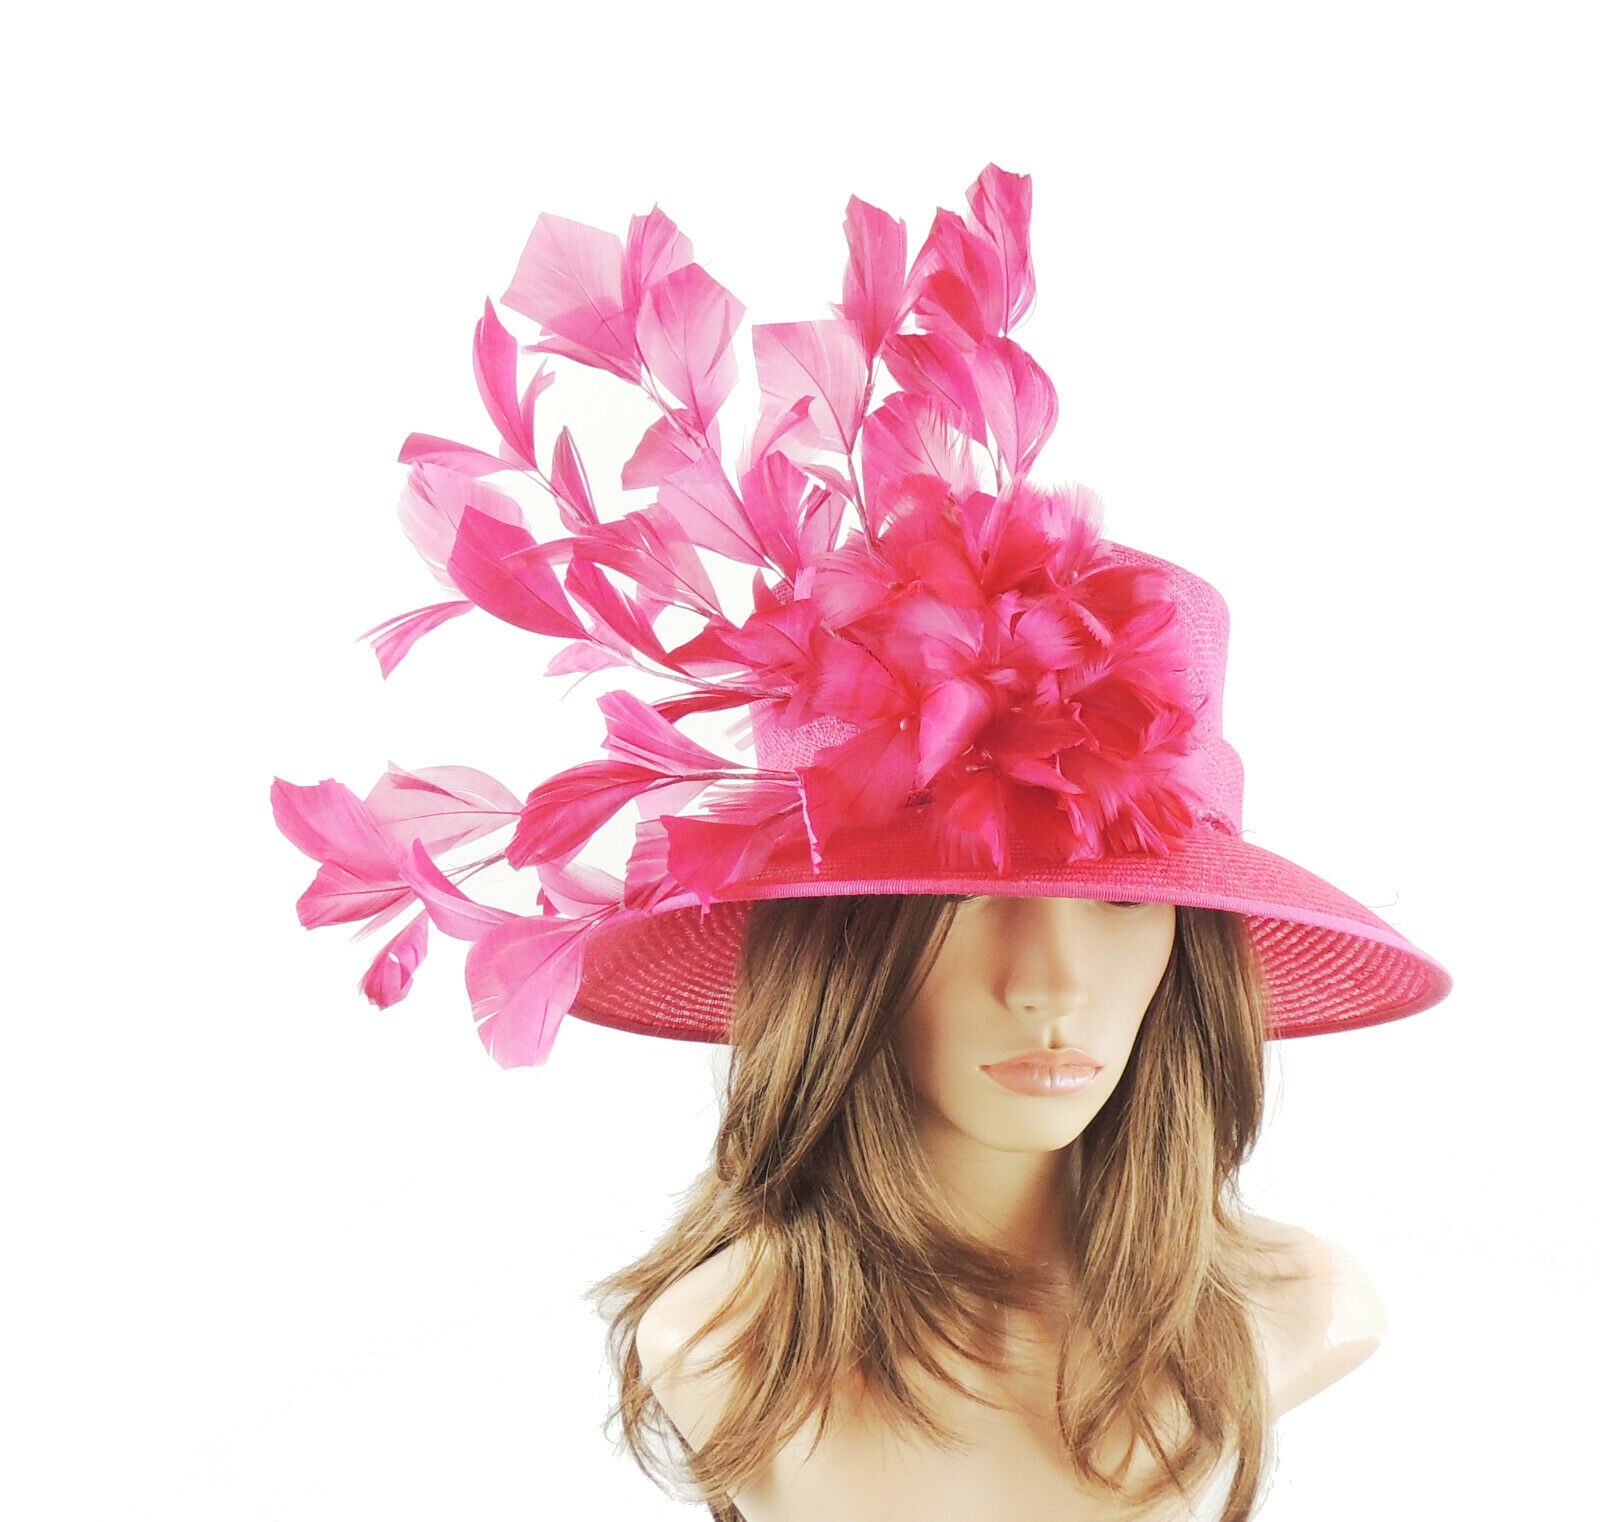 Fuchsia Pink Ascot Hat for Weddings, Ascot, Melbourne Cup HA